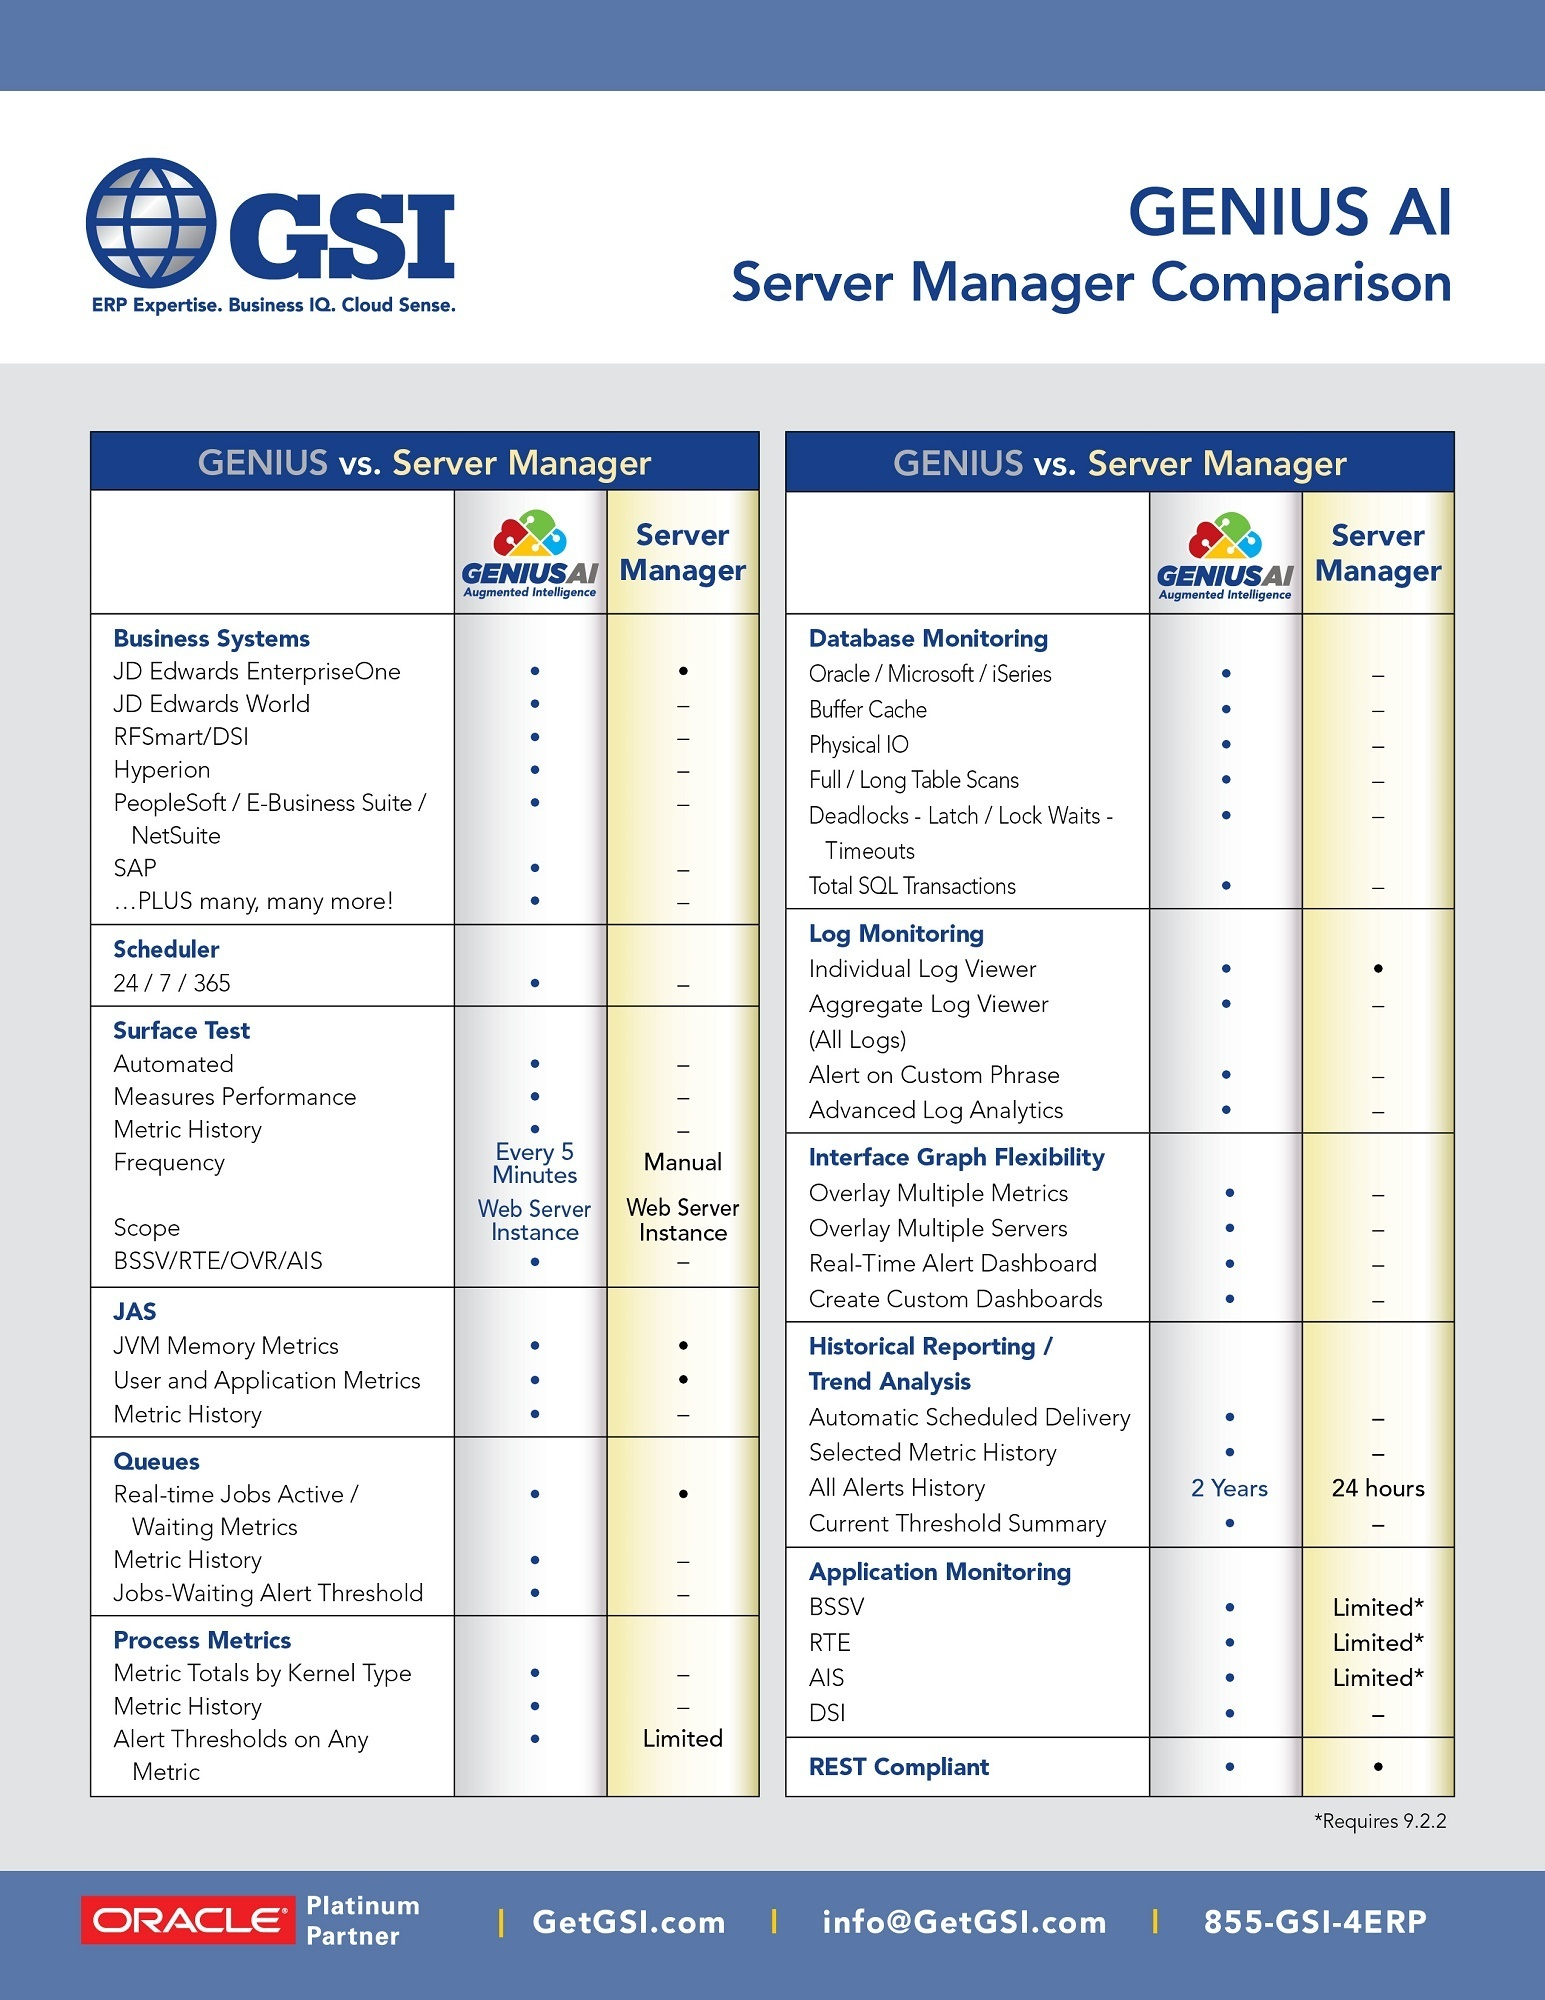 GENIUS AI Server Manager Comparison 2